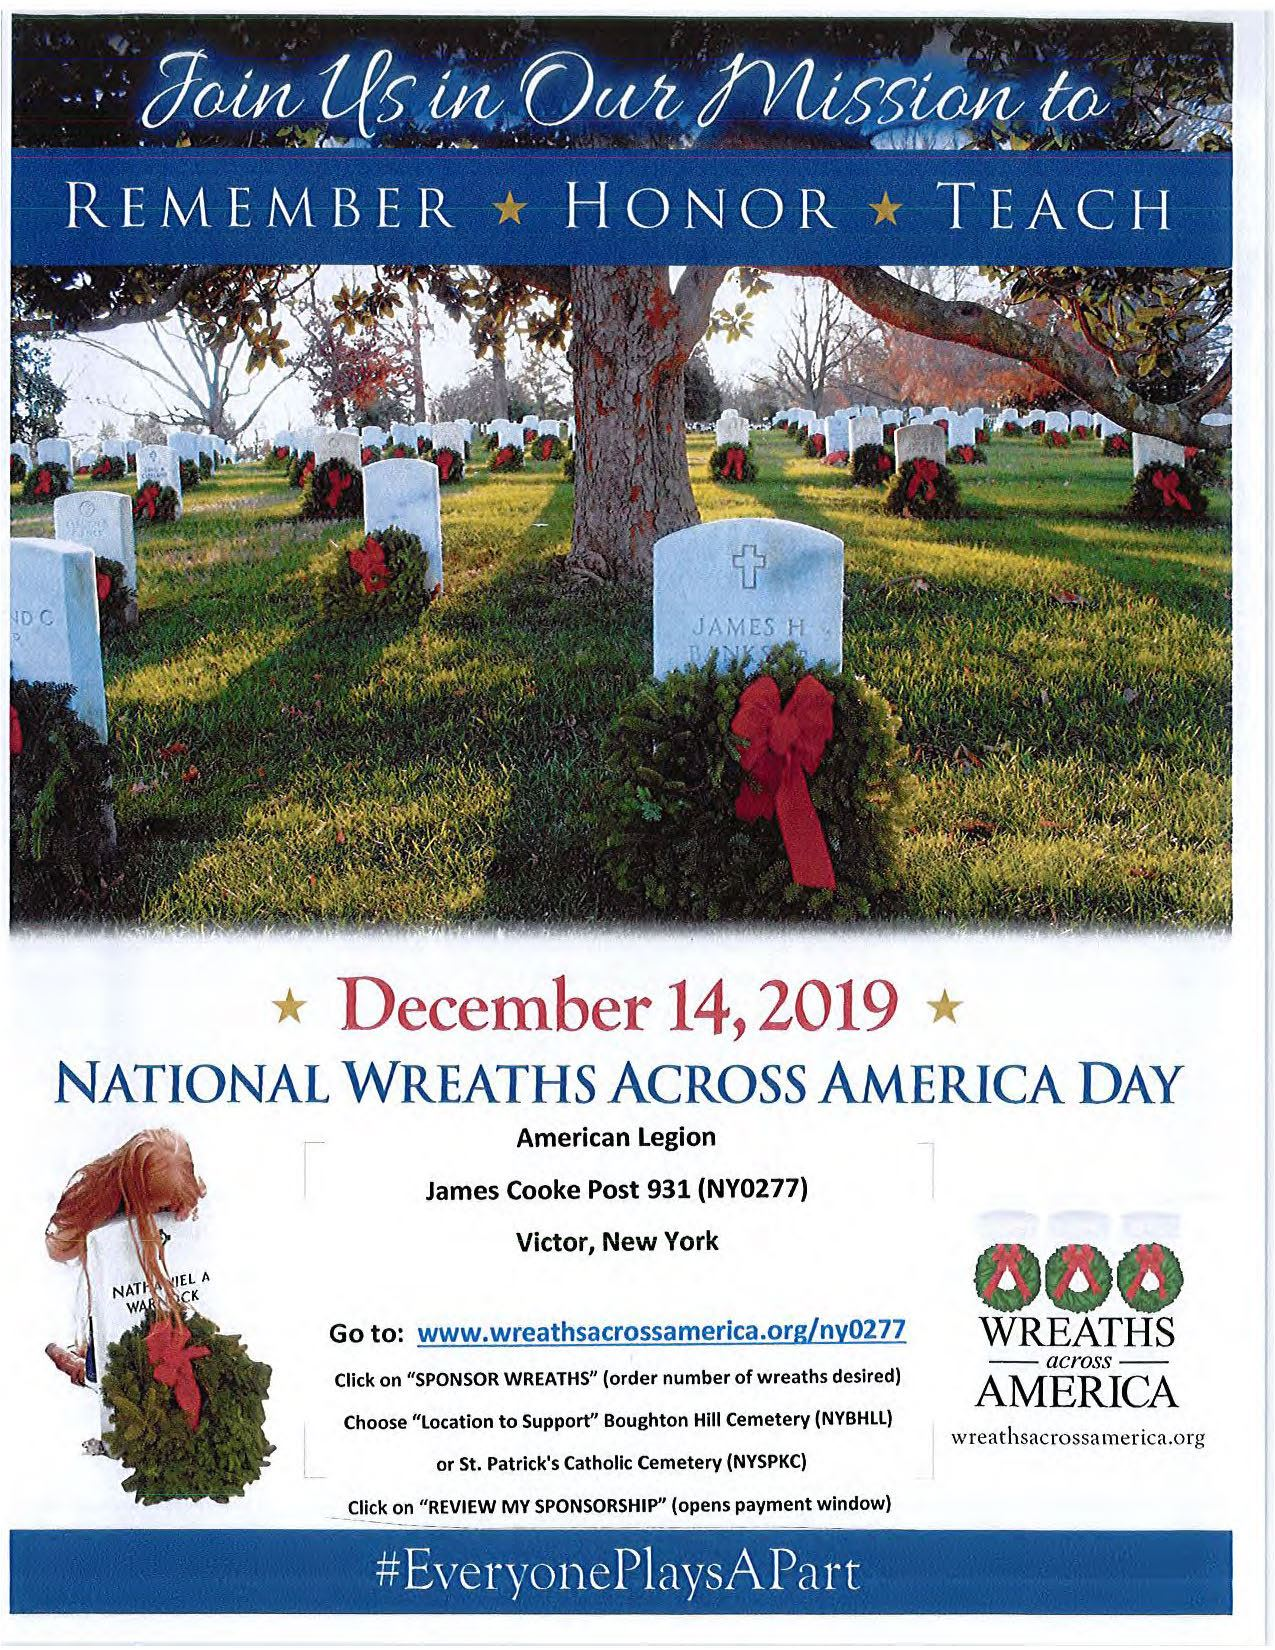 Wreaths Across America flyer cemetery headstones with wreaths